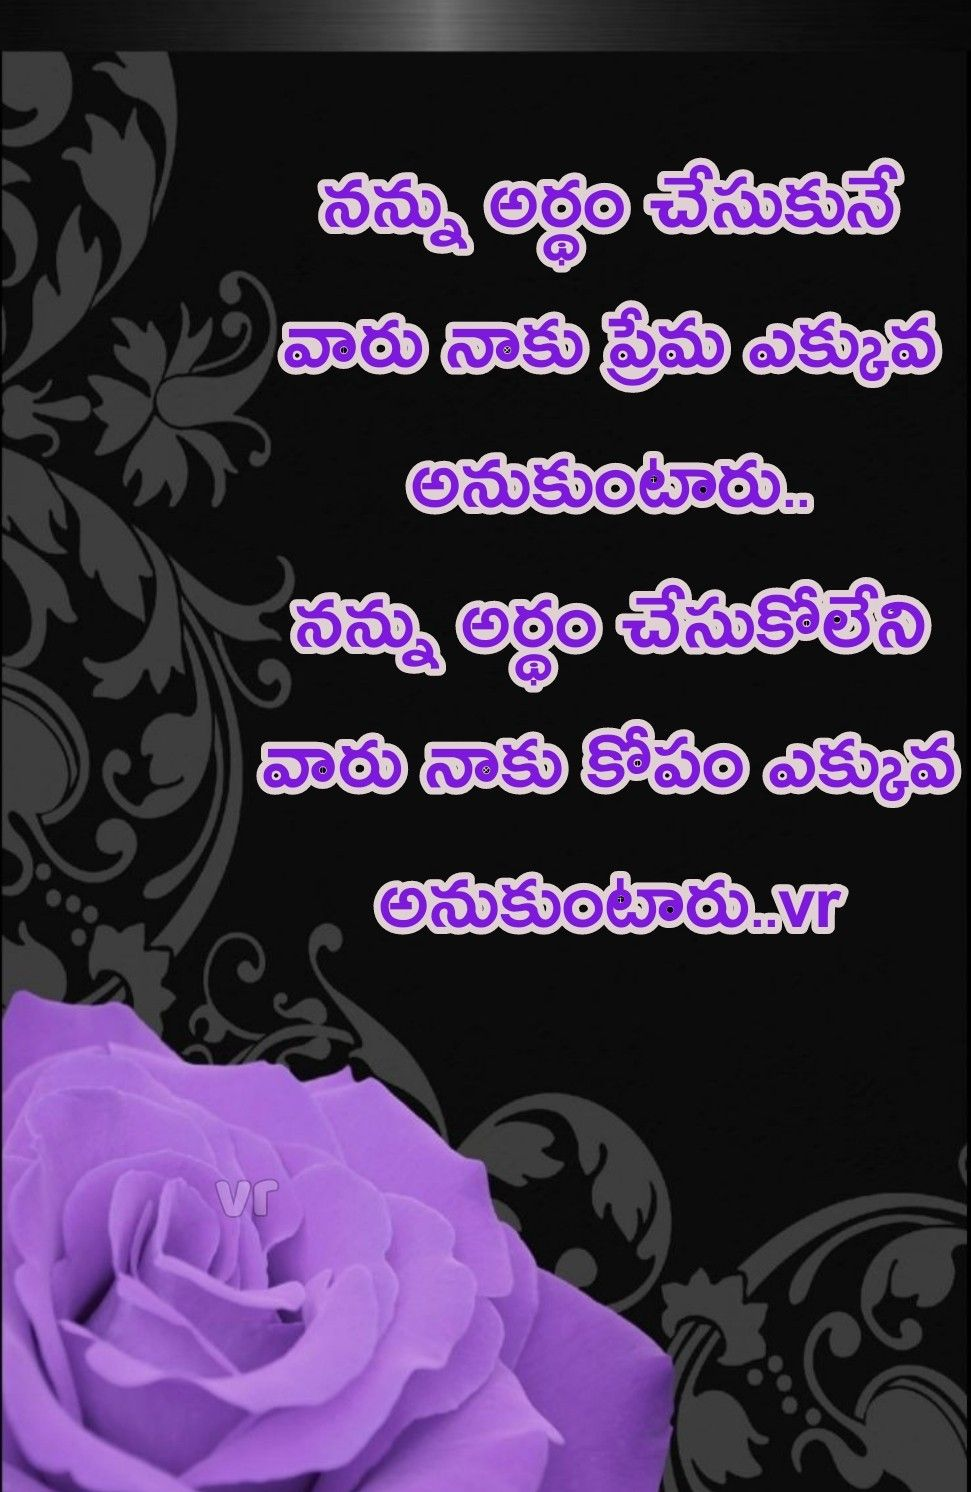 Pin By Mahesh Golla On My Own Creative Real Relationship Quotes Love Quotes In Telugu Telugu Inspirational Quotes